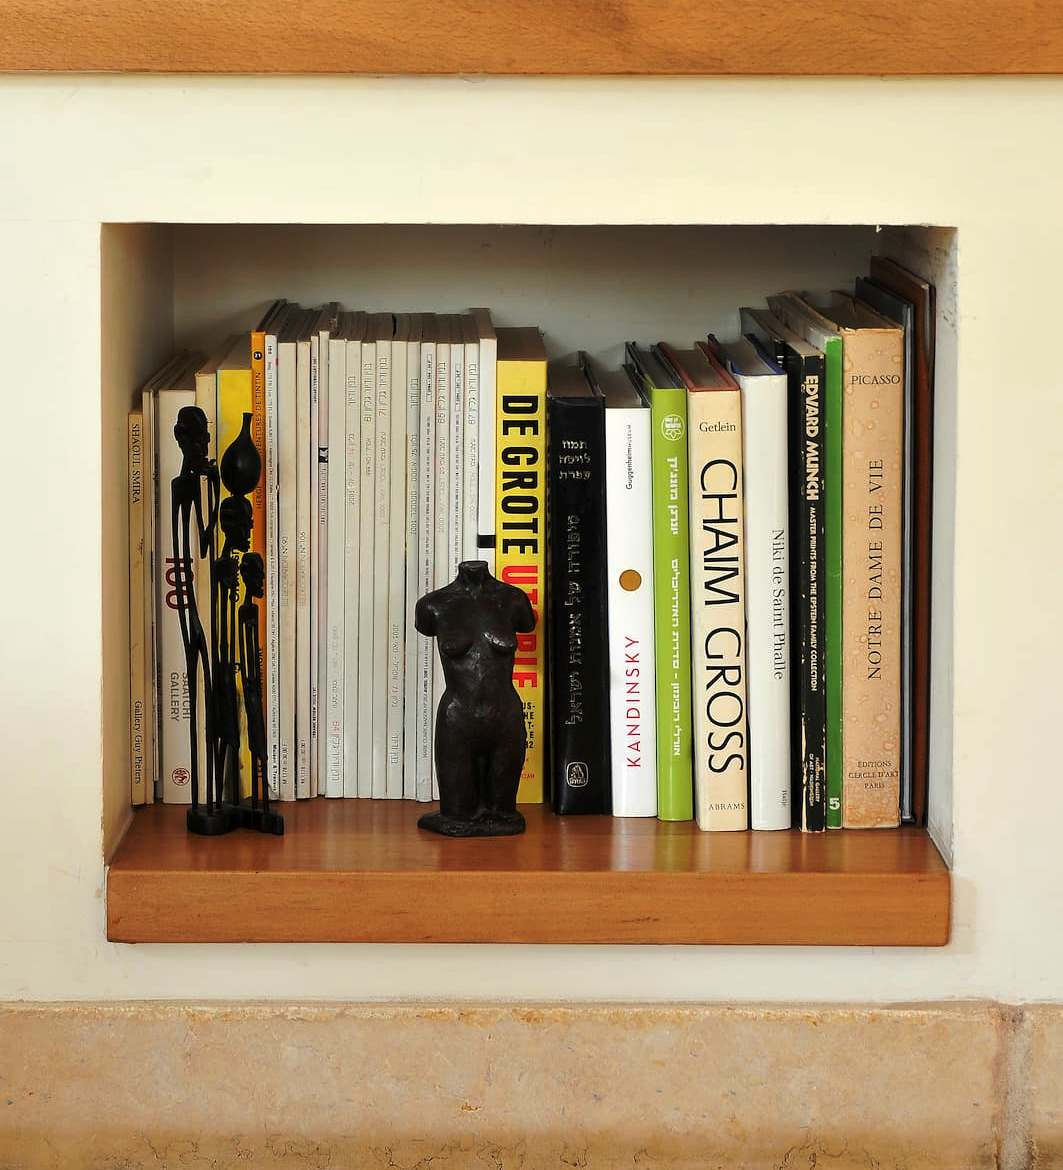 Books in a square niche built into a wall with a wooden shelf base